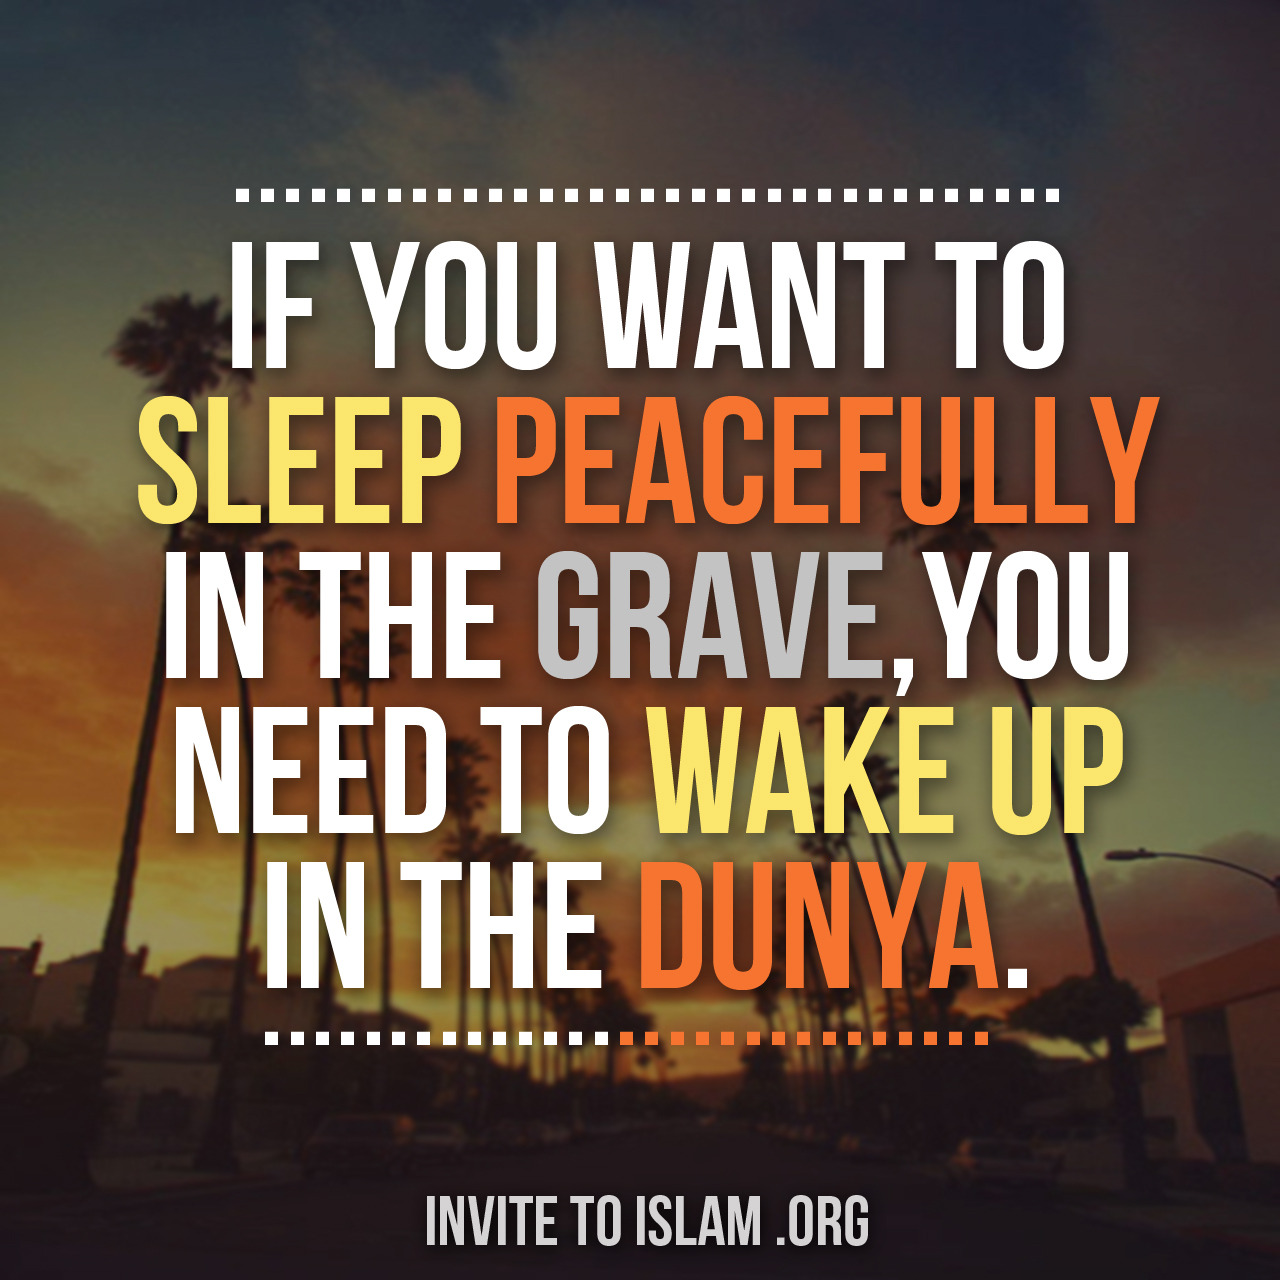 invitetoislam: So true! There is so much to do but insha'Allah we will relax soon in Jannah. May Allah protect us from the punishment of the Grave, May He make it easy for us and May Allah SWT grant us all Jannat ul Firdous